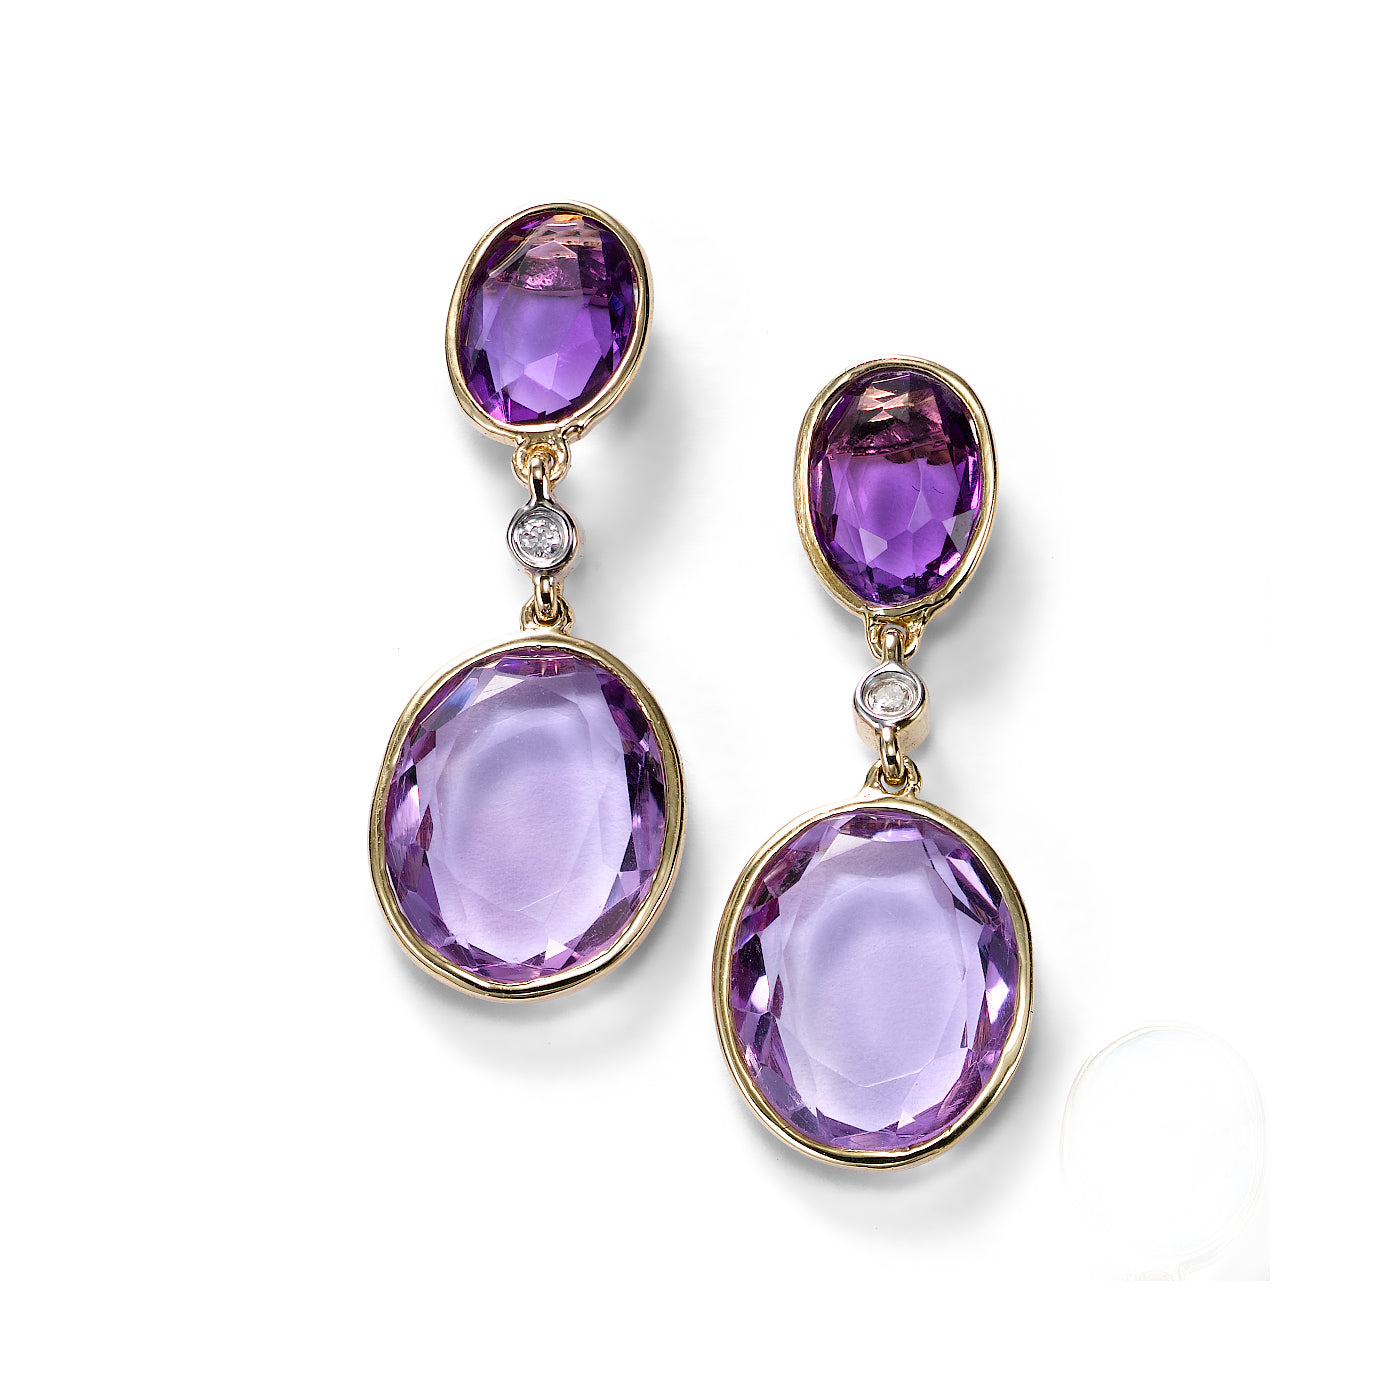 Oval Amethyst Drop Earrings with Diamond Accent, 14K Yellow Gold